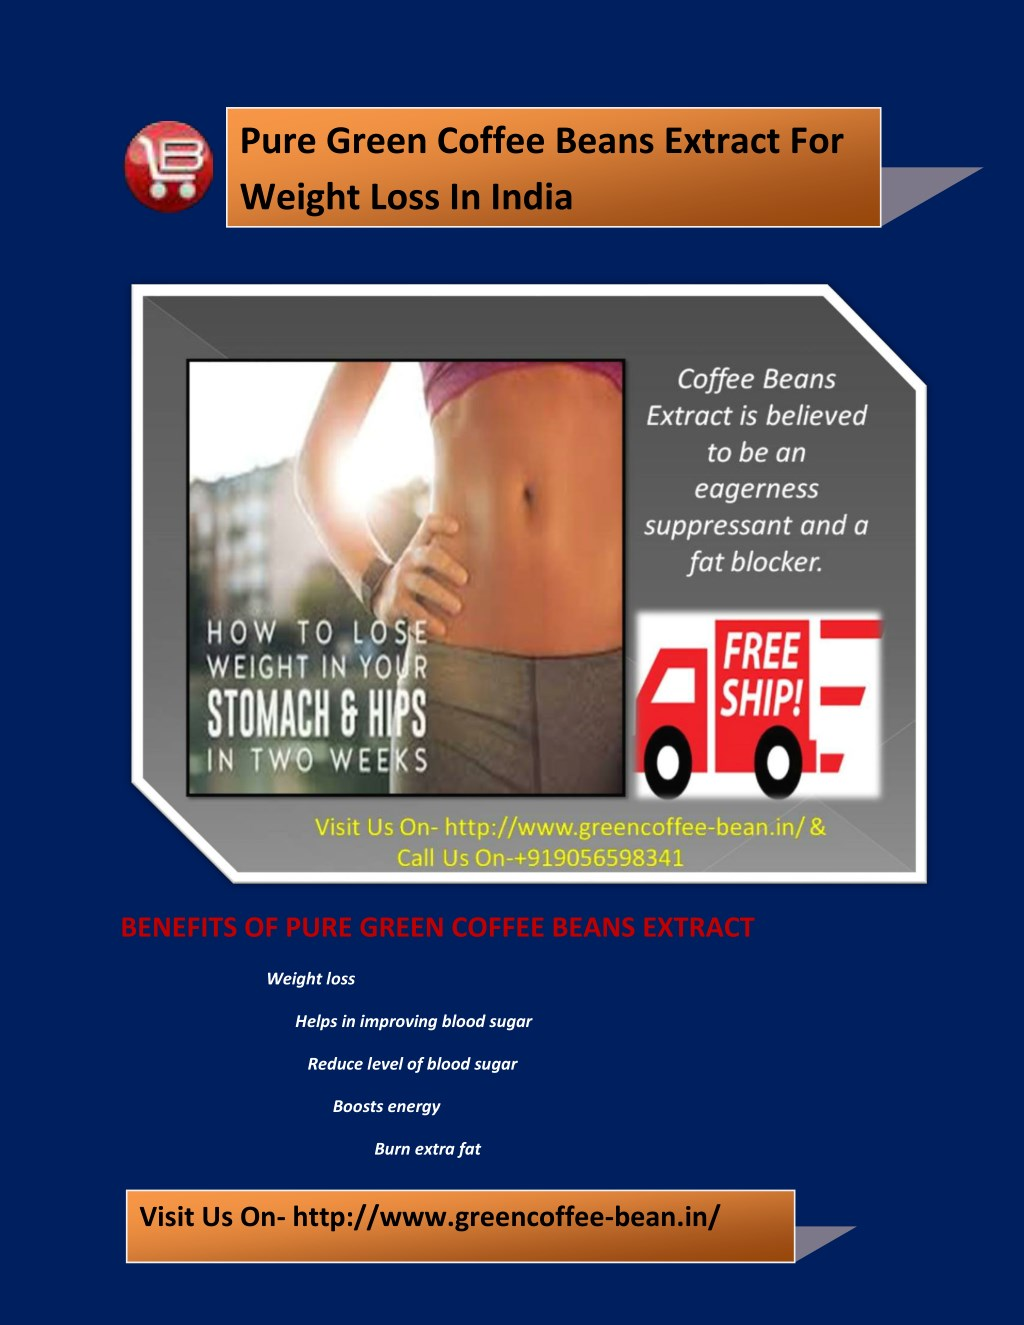 Ppt Pure Green Coffee Beans Extract For Weight Loss In India